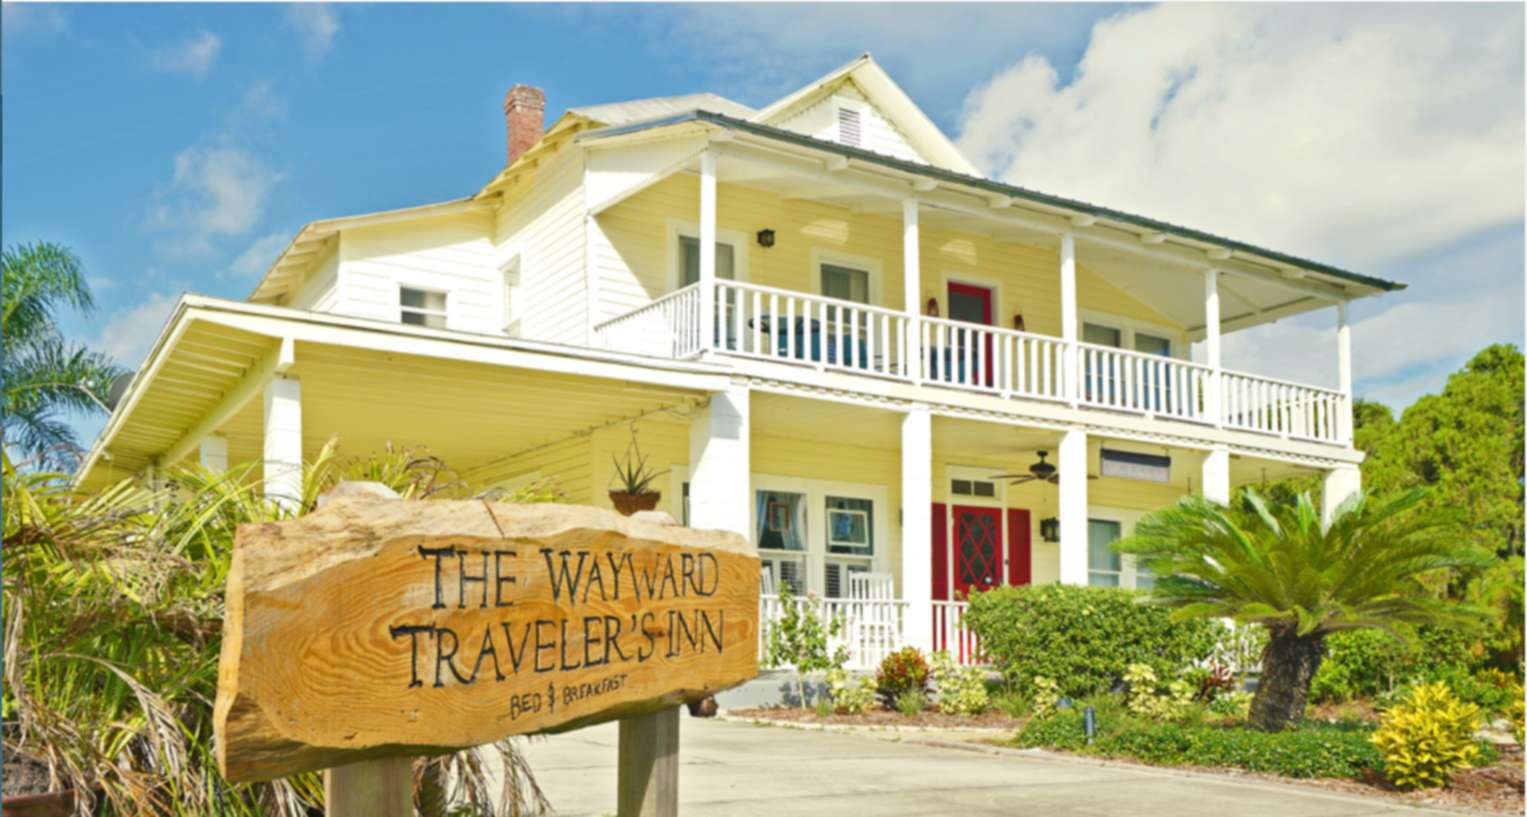 A sign on the side of a building at The Wayward Traveler's Inn.